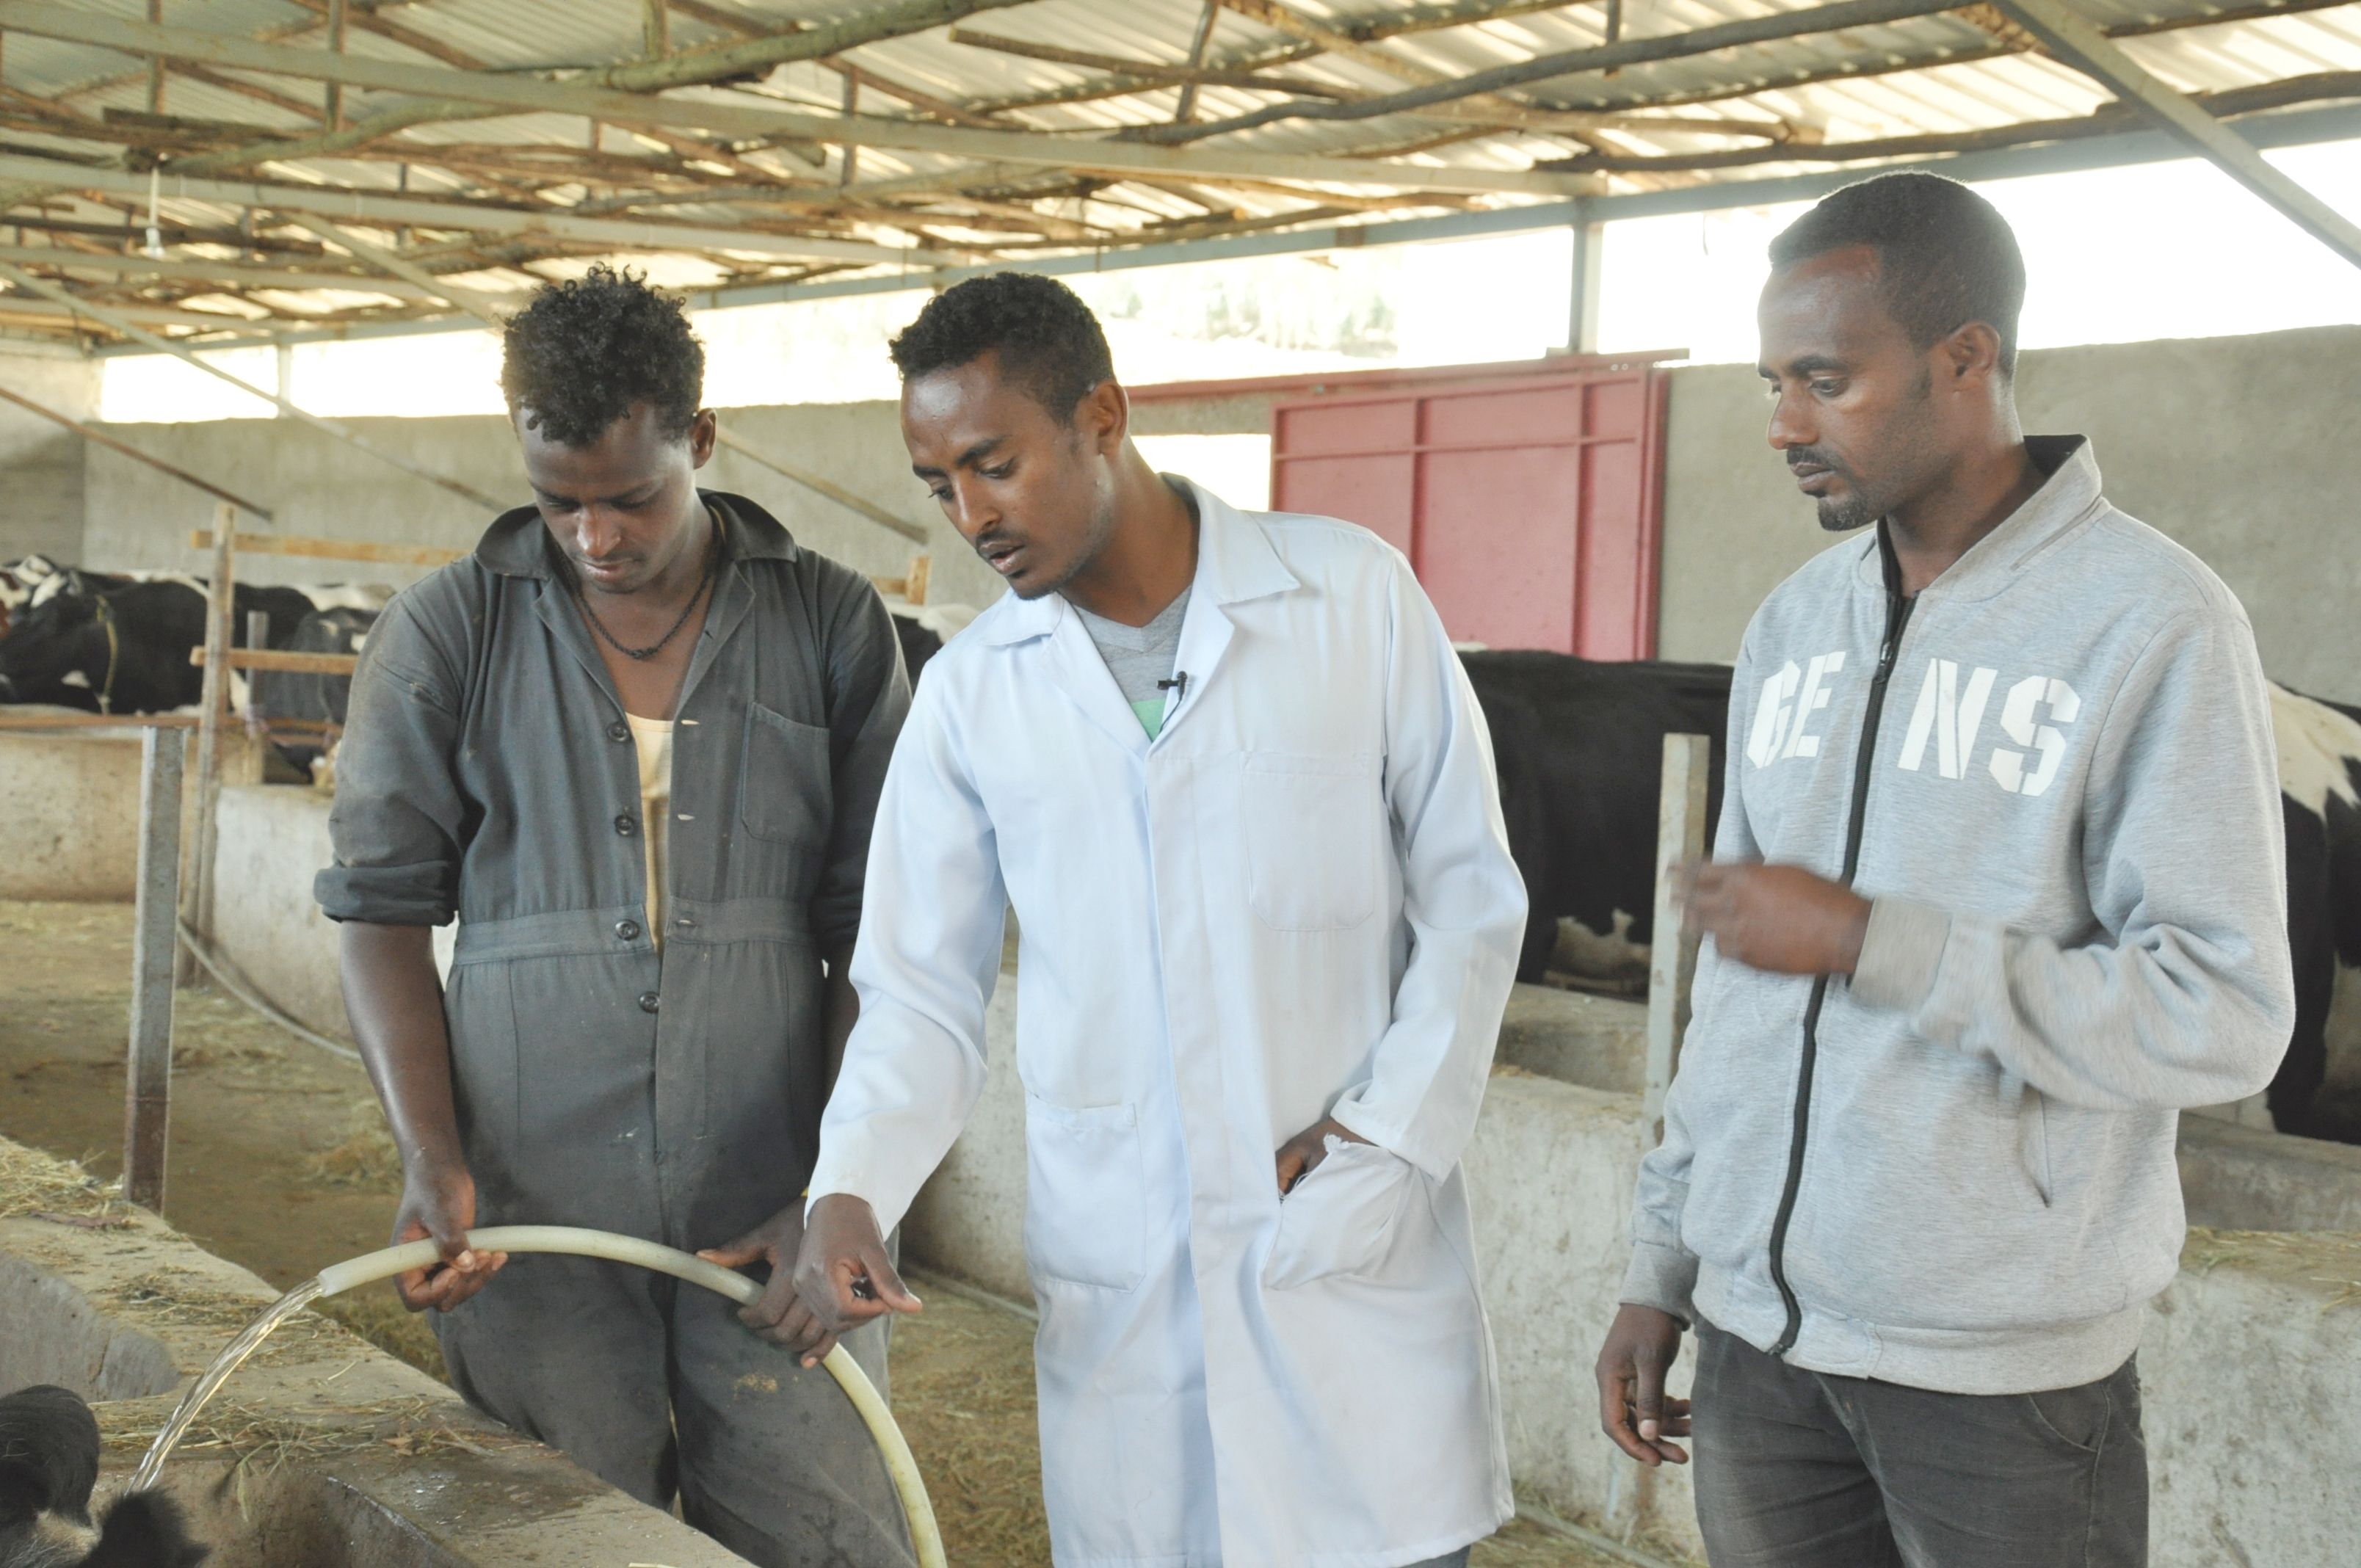 Tilahun Mulatu, a Dairy Advisor gives dairy management tips to farm works at the Zamg Business PLC in Chacha, Ethiopia